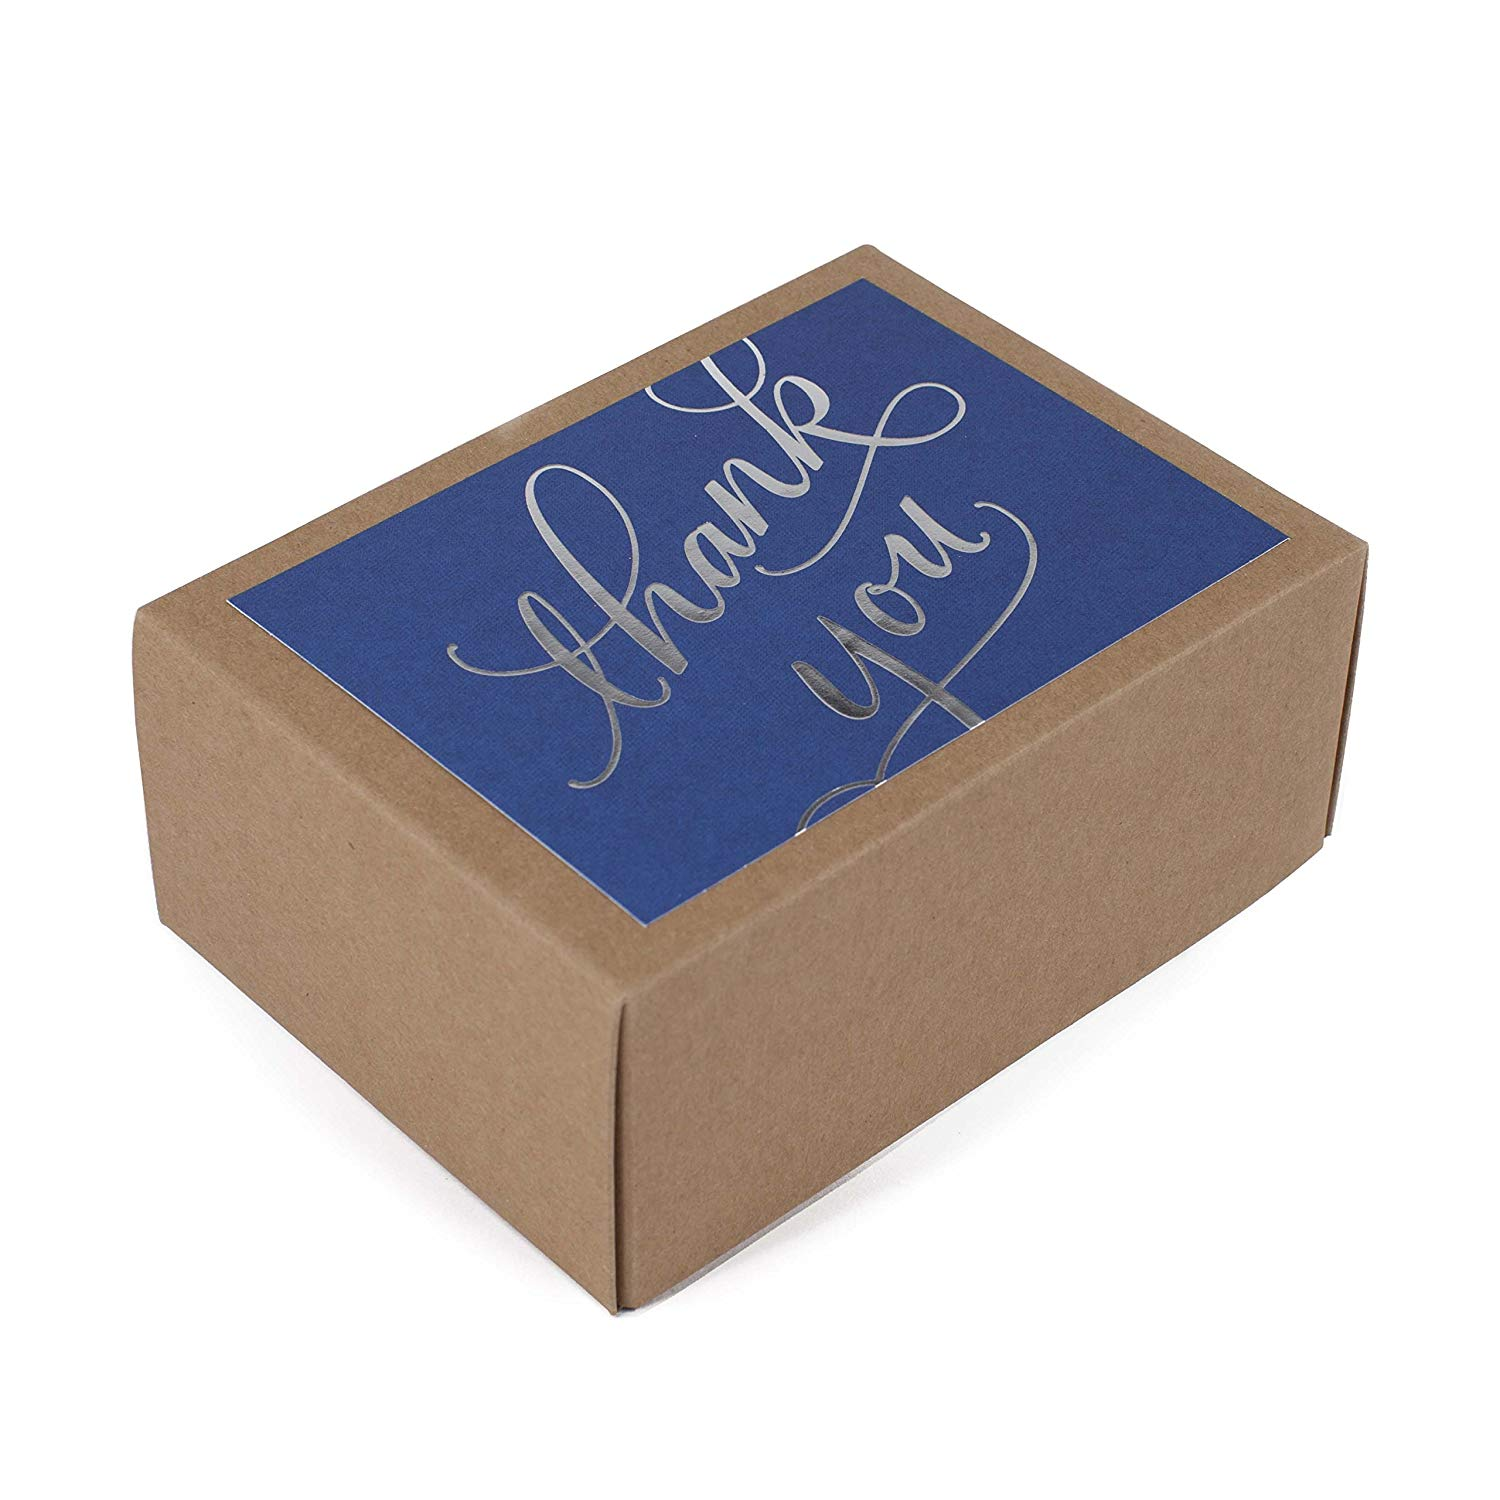 Thank You Cards in Silver Foil